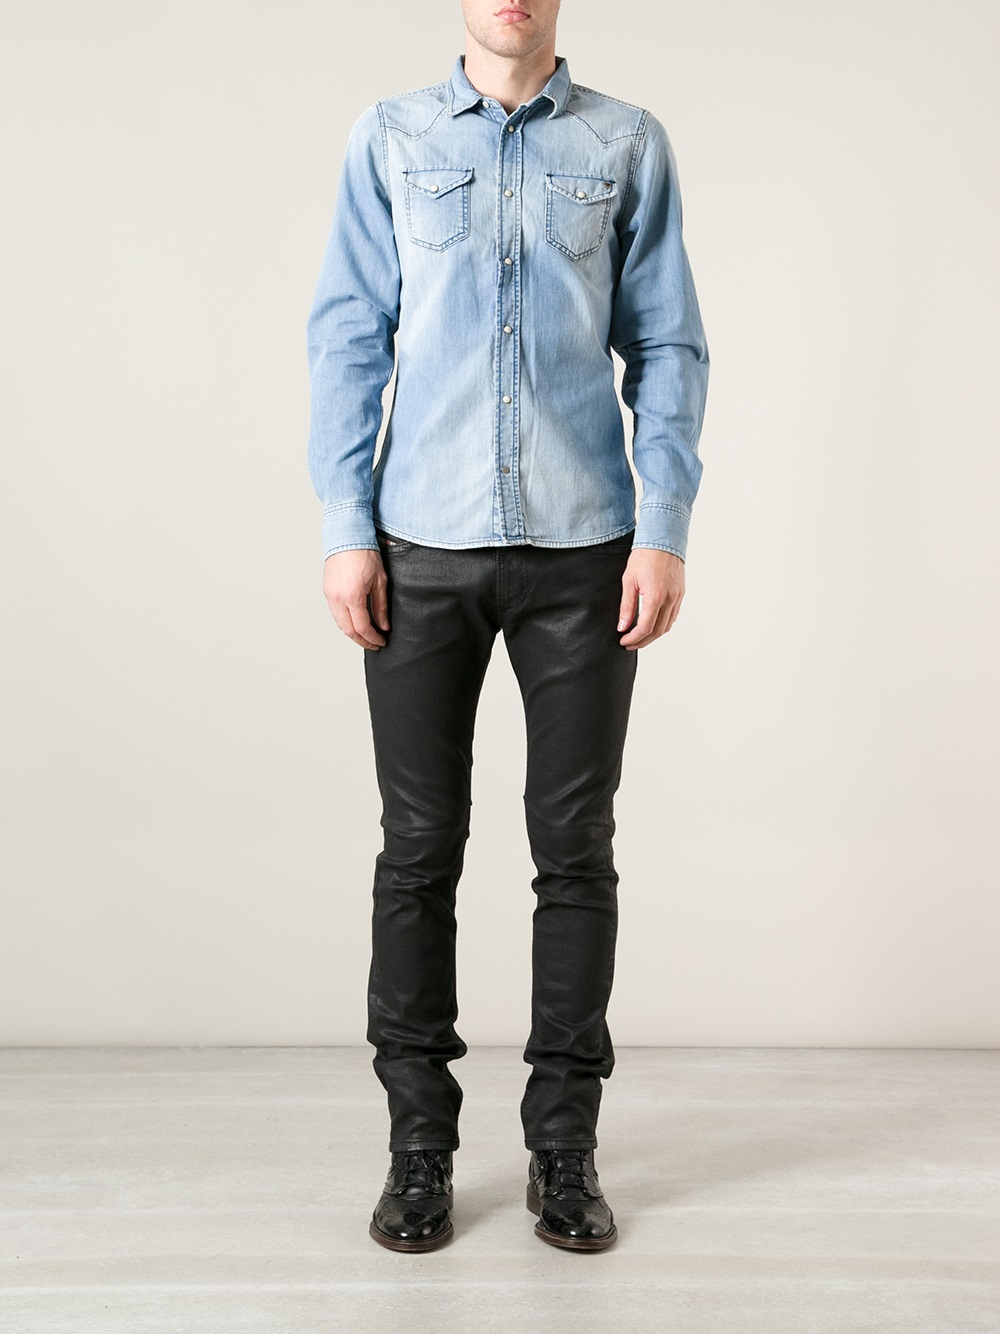 Lyst - Diesel Waxed Denim Jeans in Black for Men